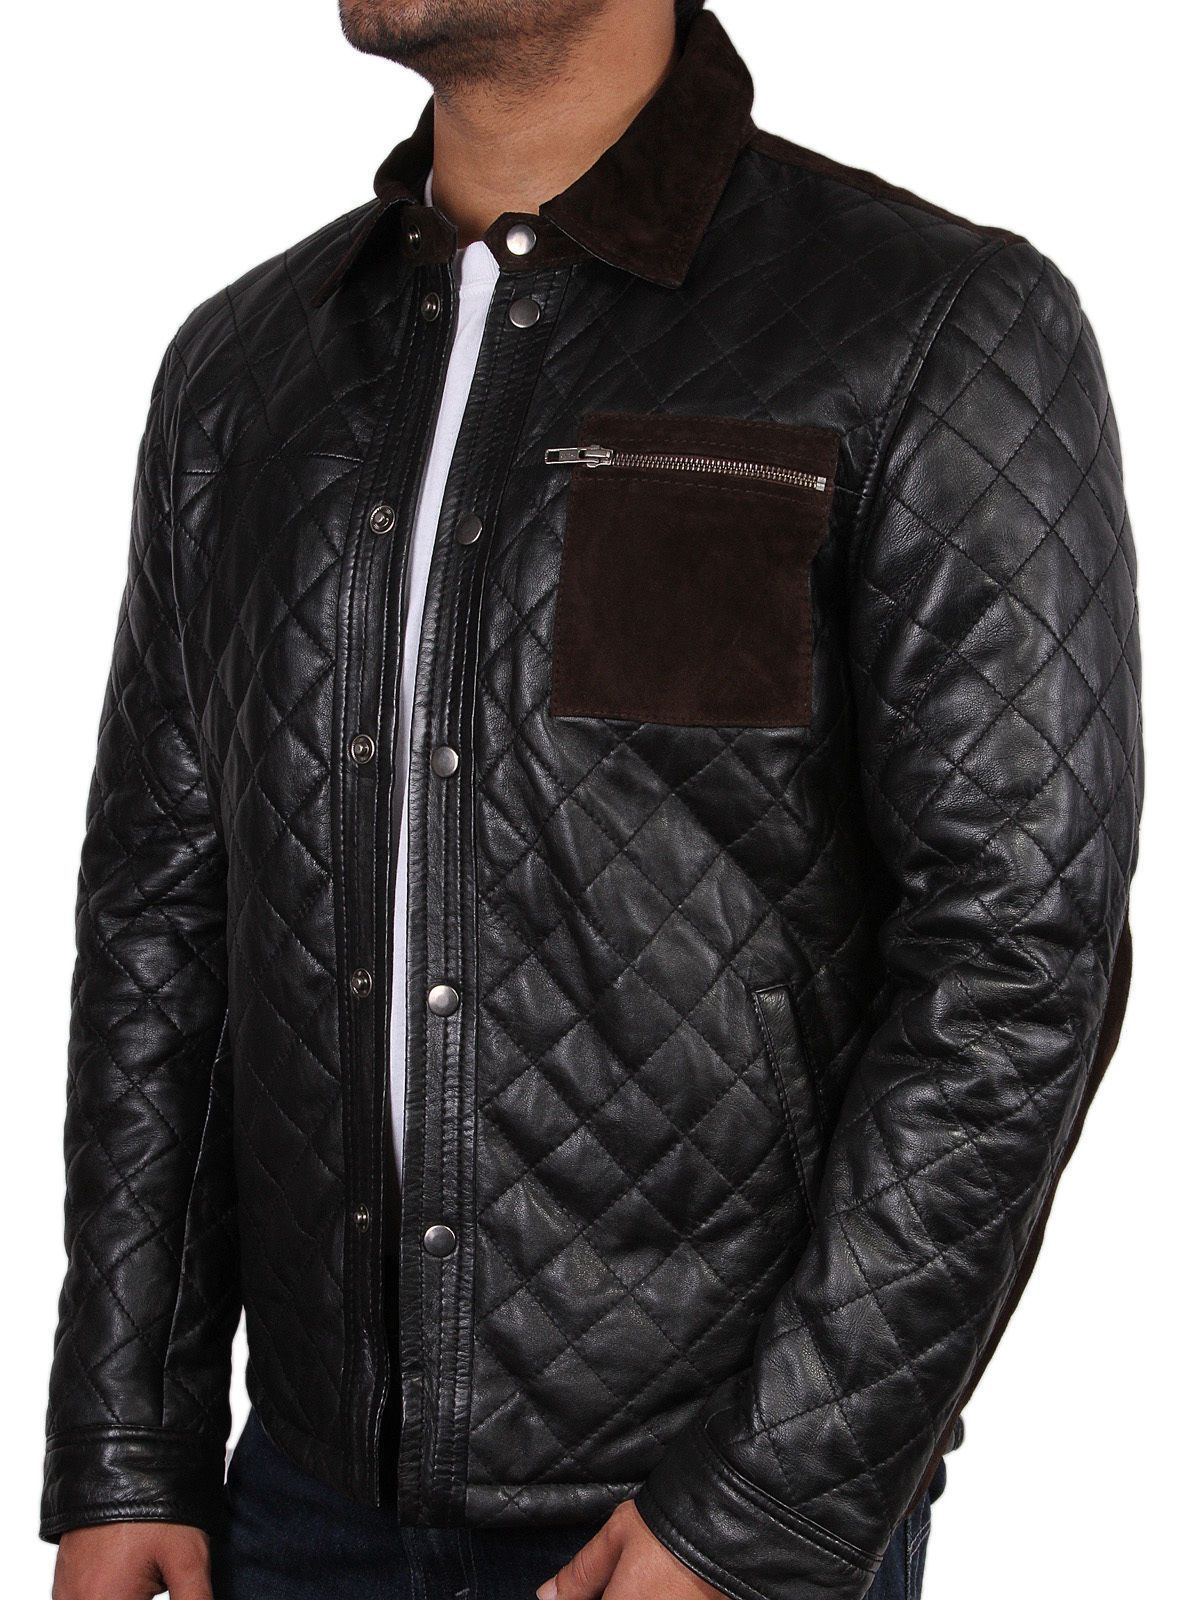 New Men's quilted leather jacket, New men quilted